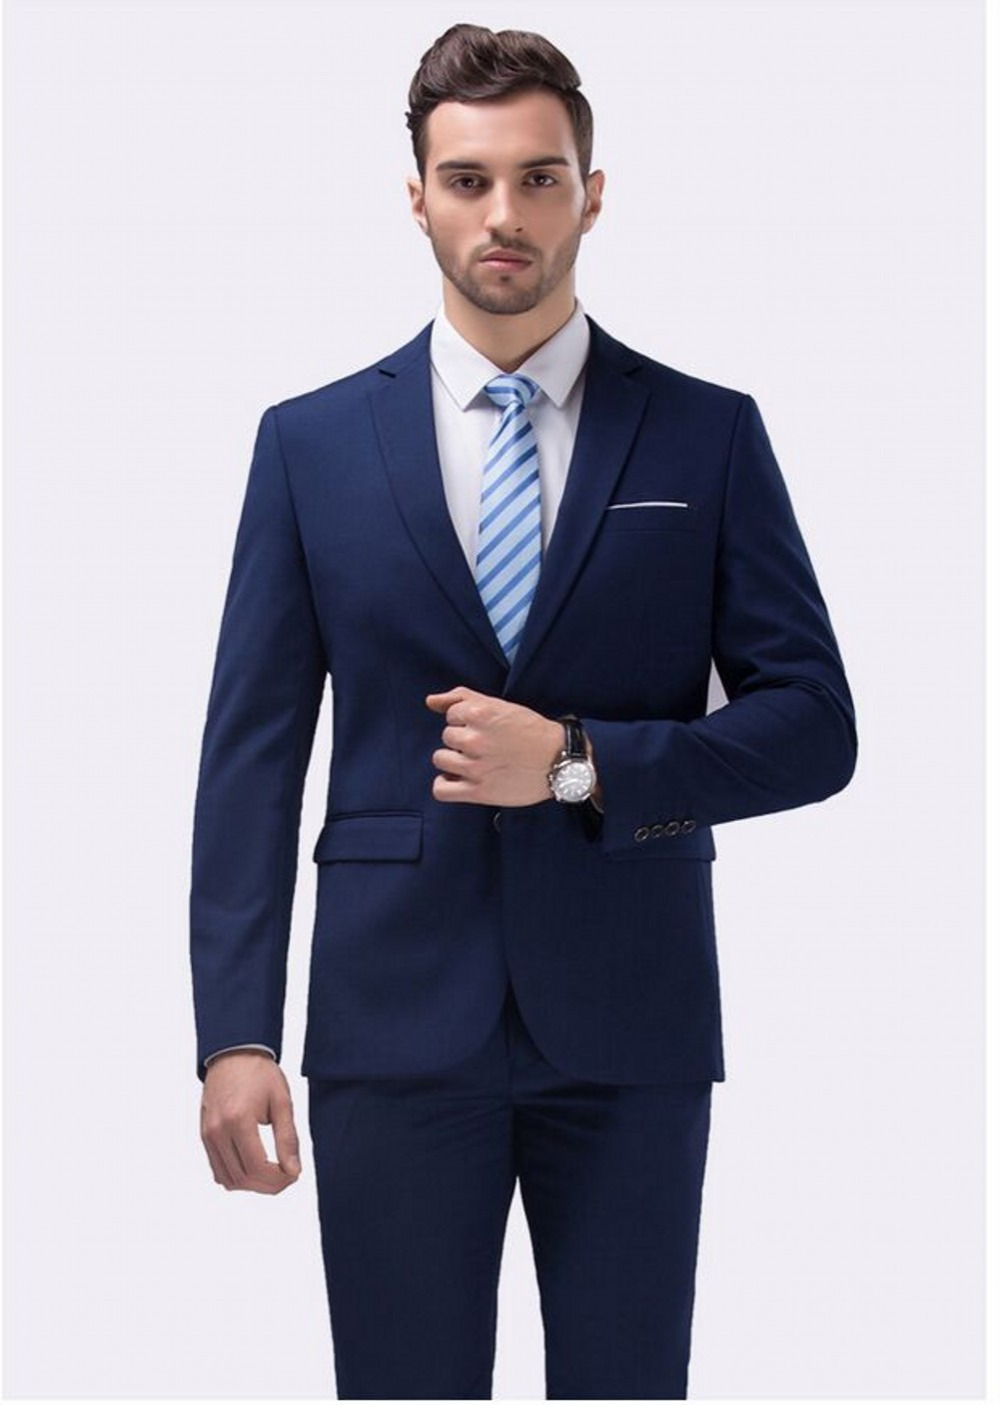 2017 Hot Selling Mens Suit Styles Classic Suits For Men Tuxedo ...